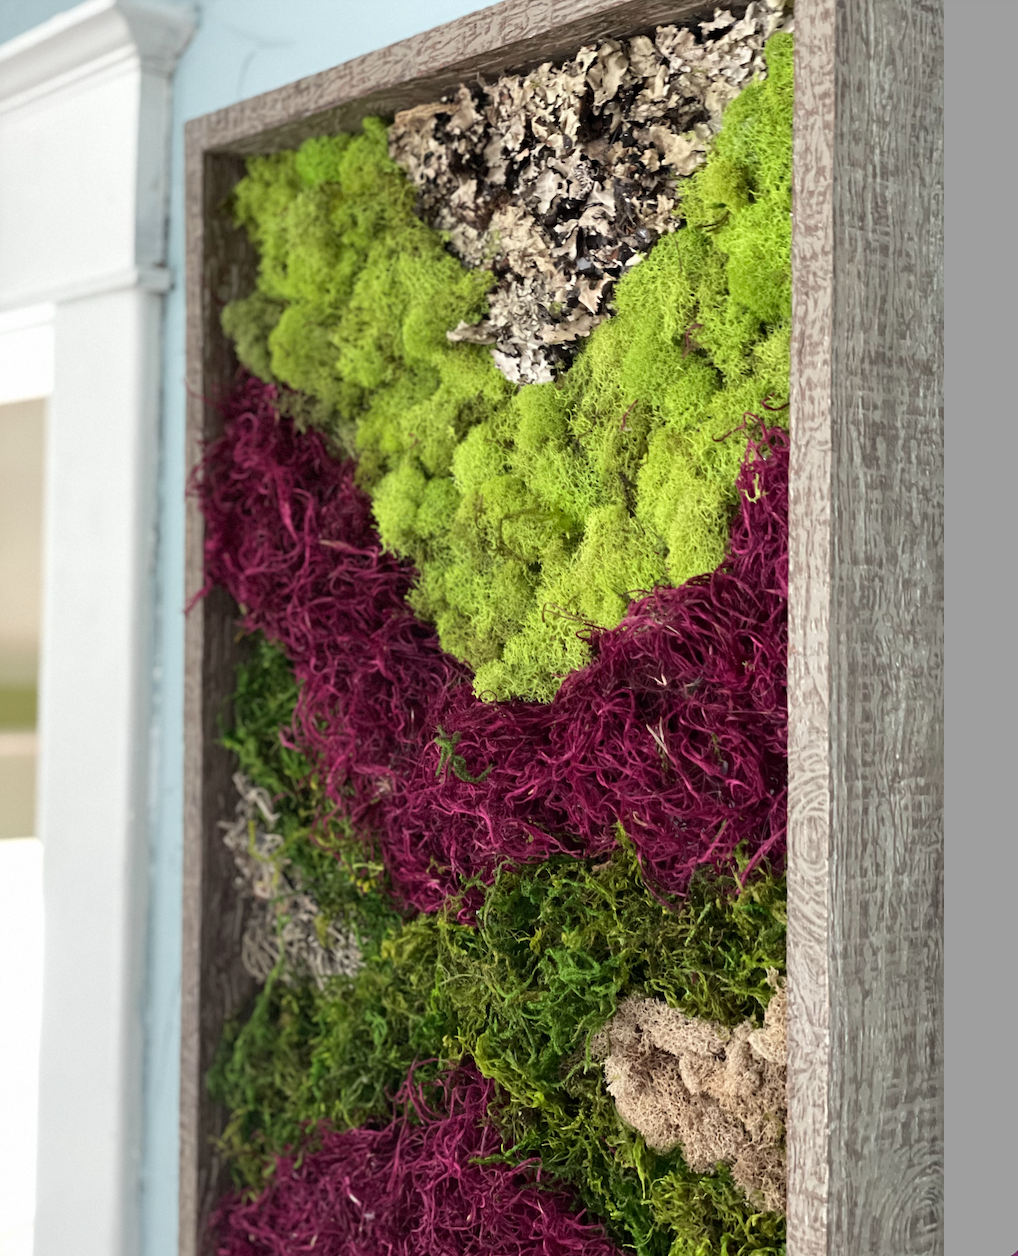 A lovely way to bring in more texture and a touch of nature to your home.